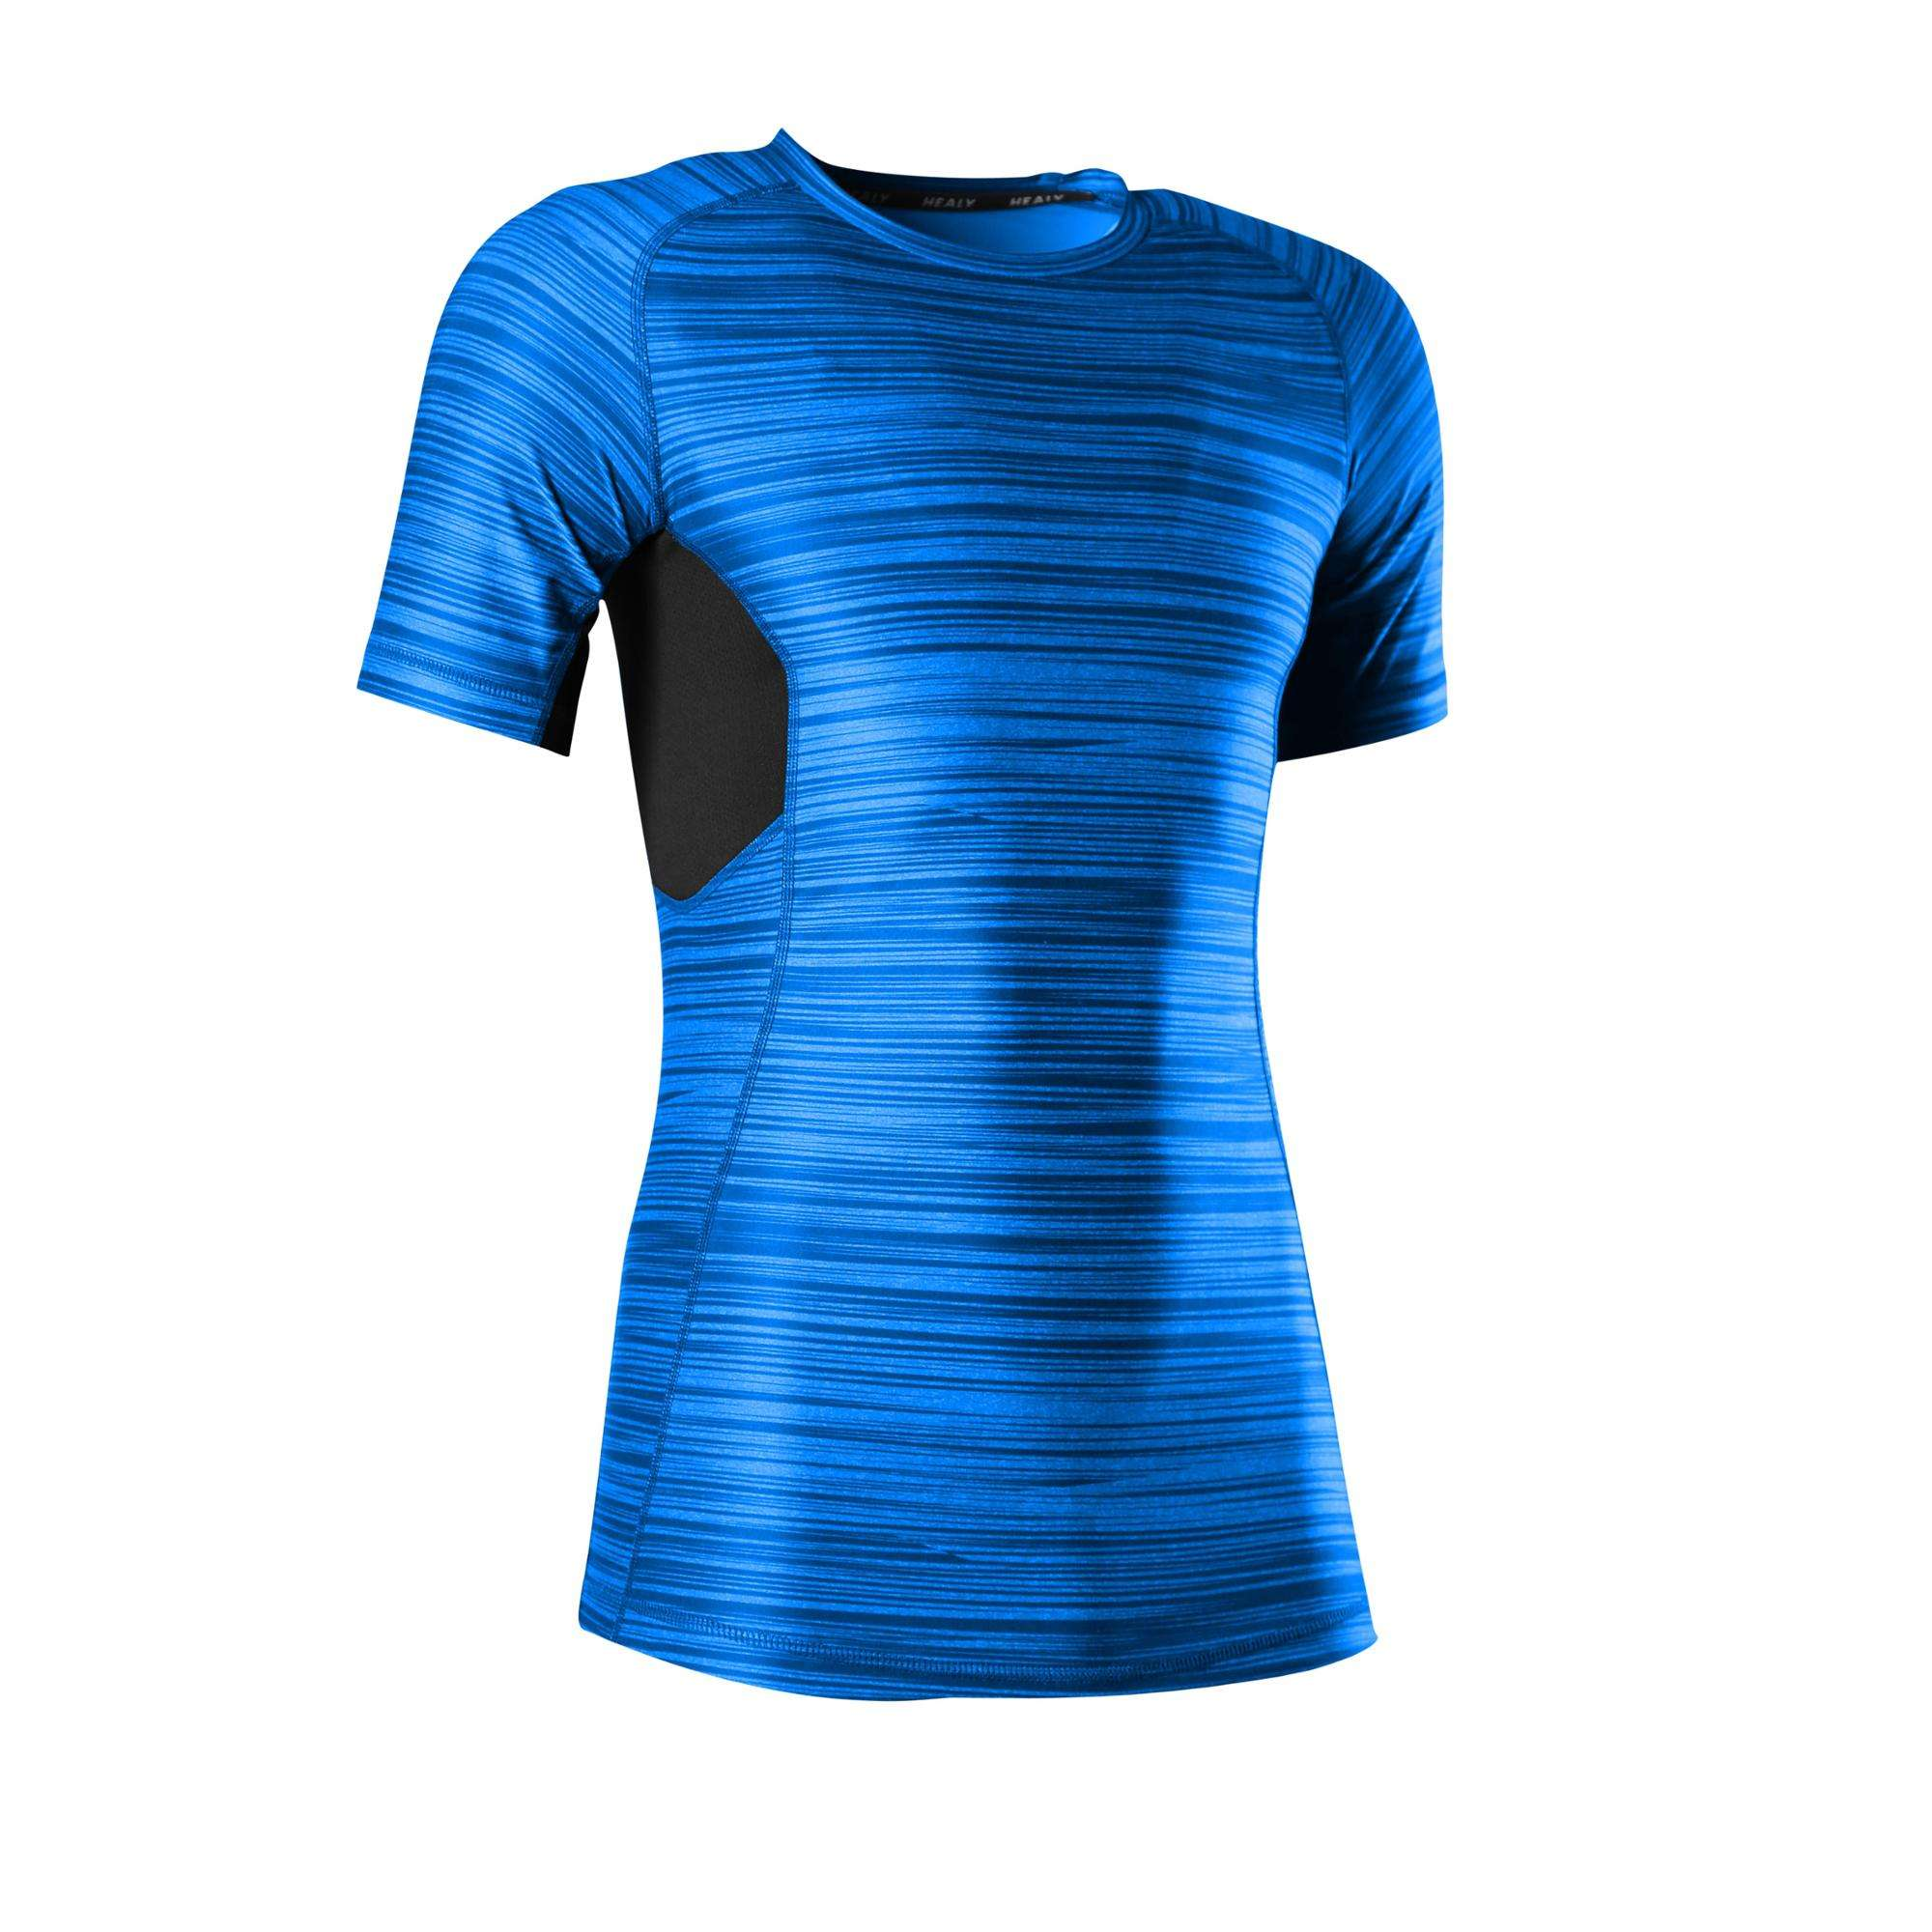 Men Matrix Compression top Quick Dry Tee Shirt Fitness Sports Clothes Man's Gym Shirt